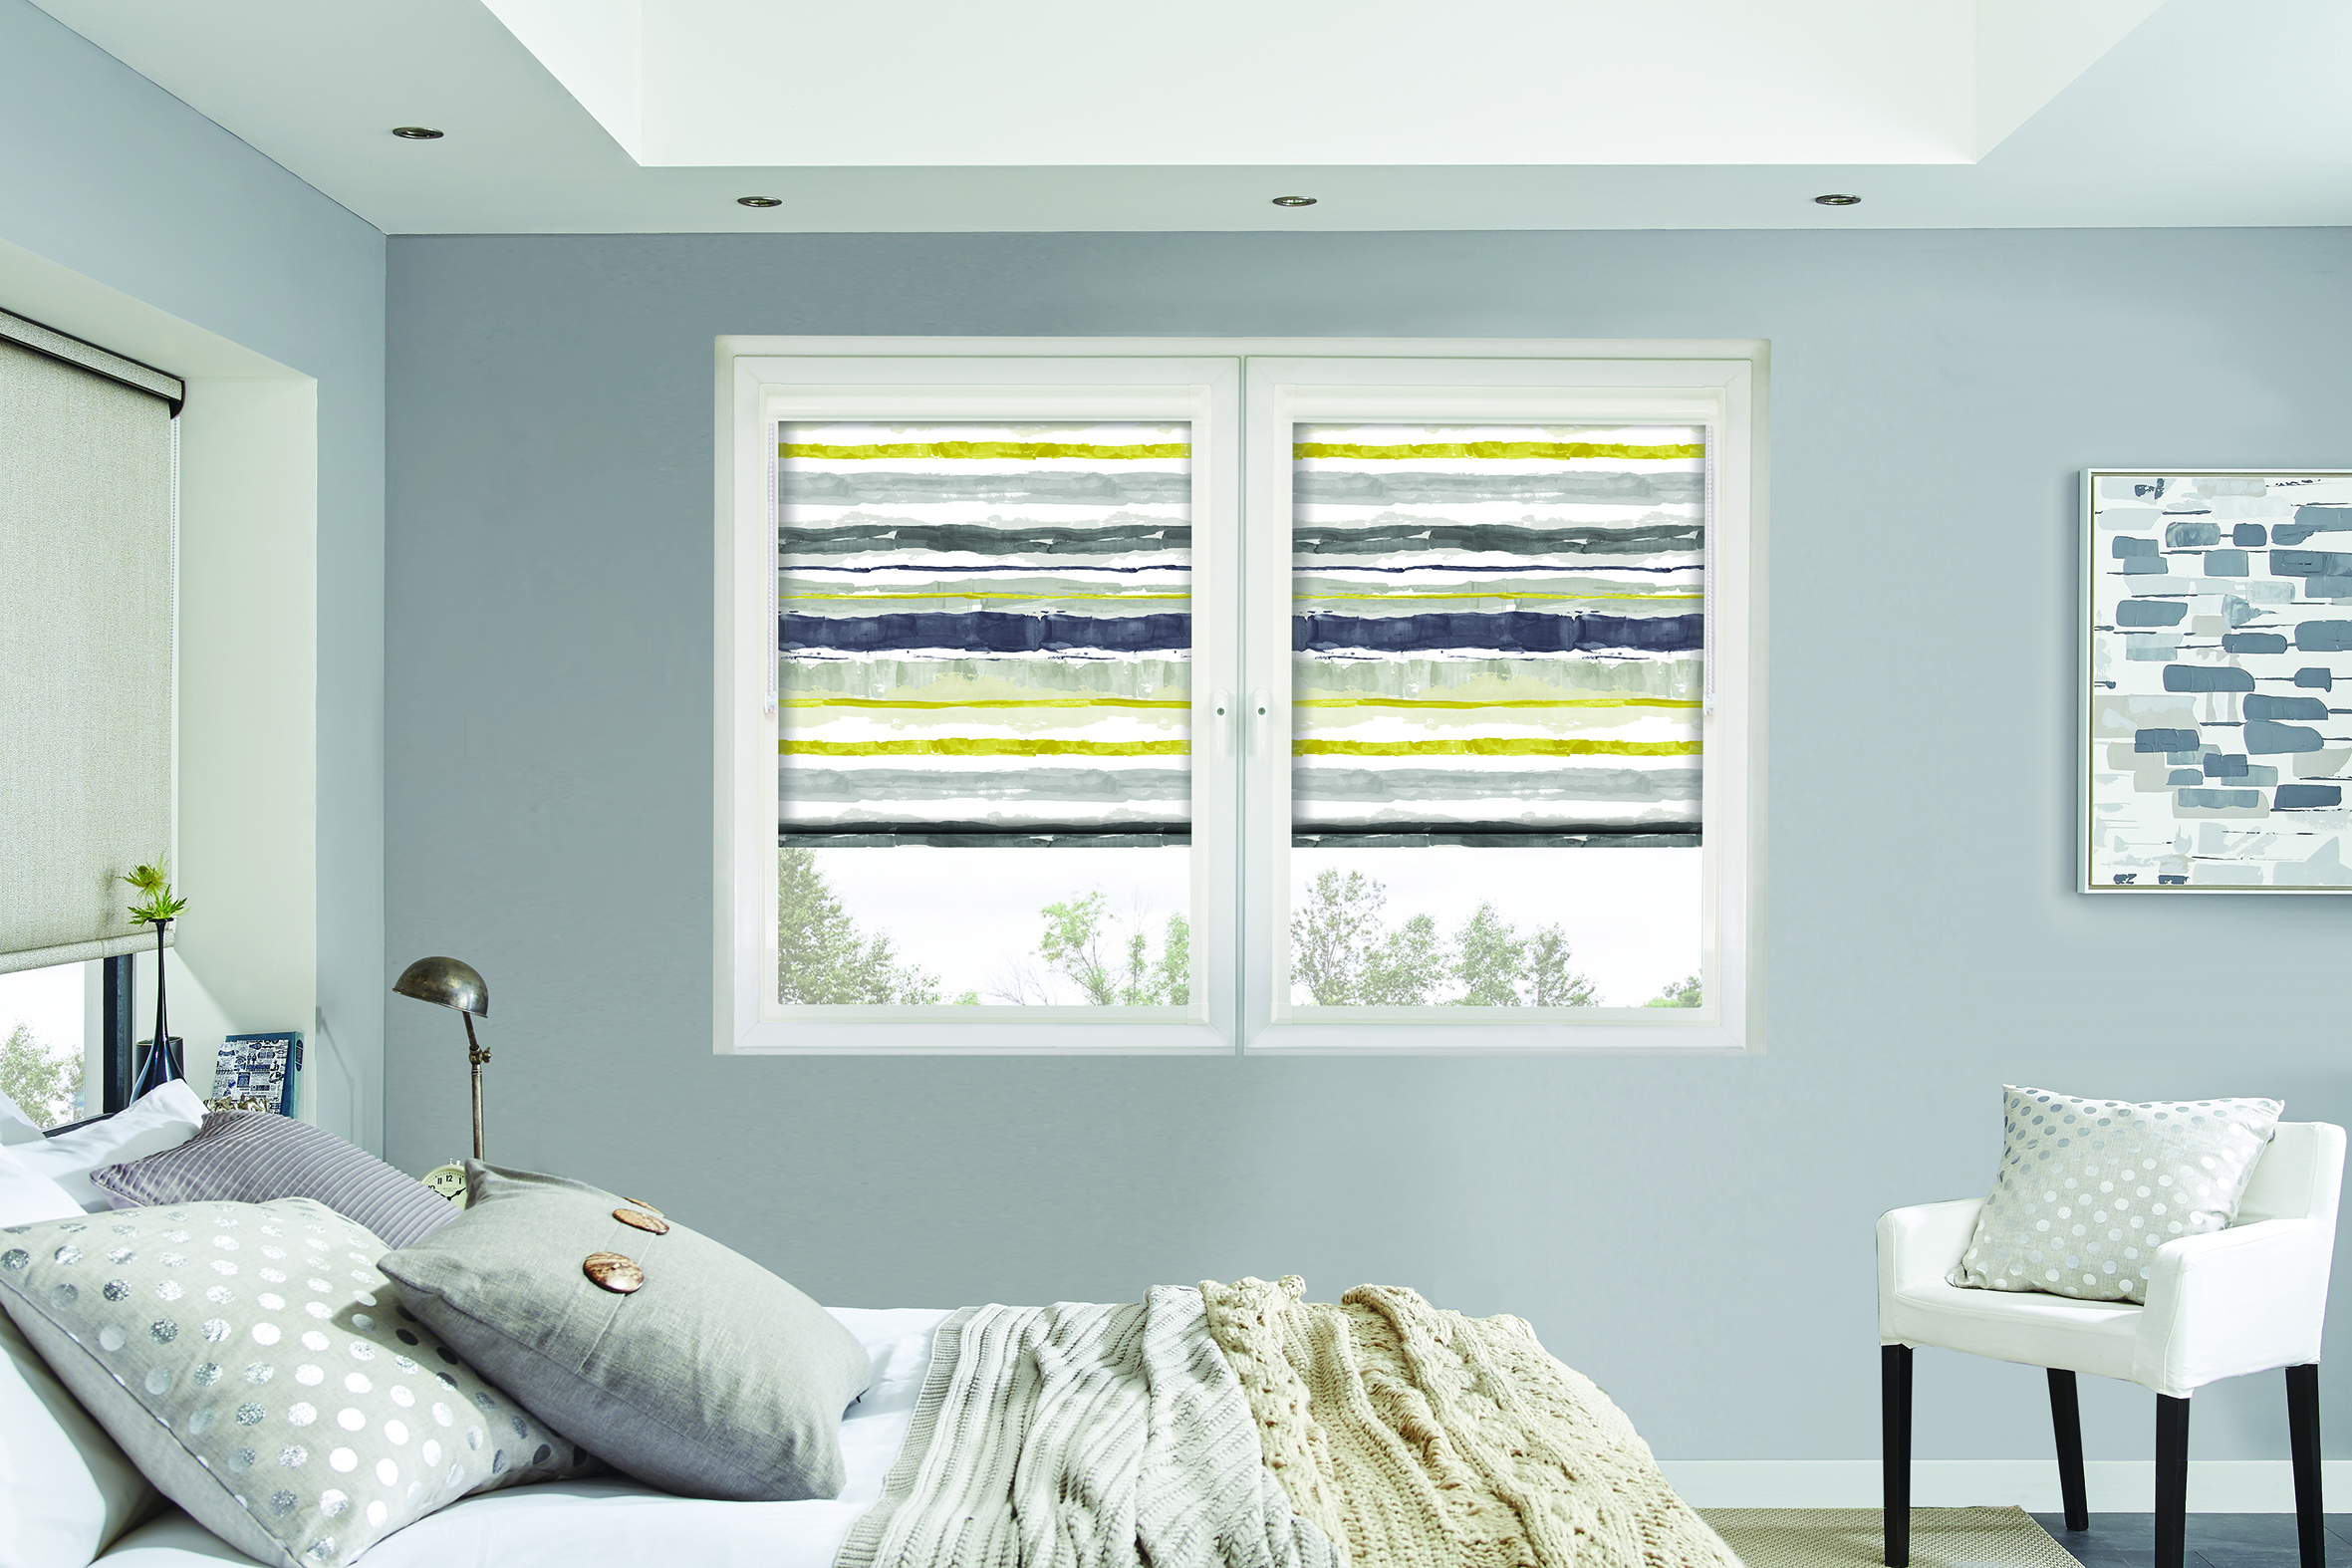 Perfect Fit Blinds     Perfect for conservatories, glazed doors and tilt & turn windows. Available in rollers, venetians and pleated blinds.